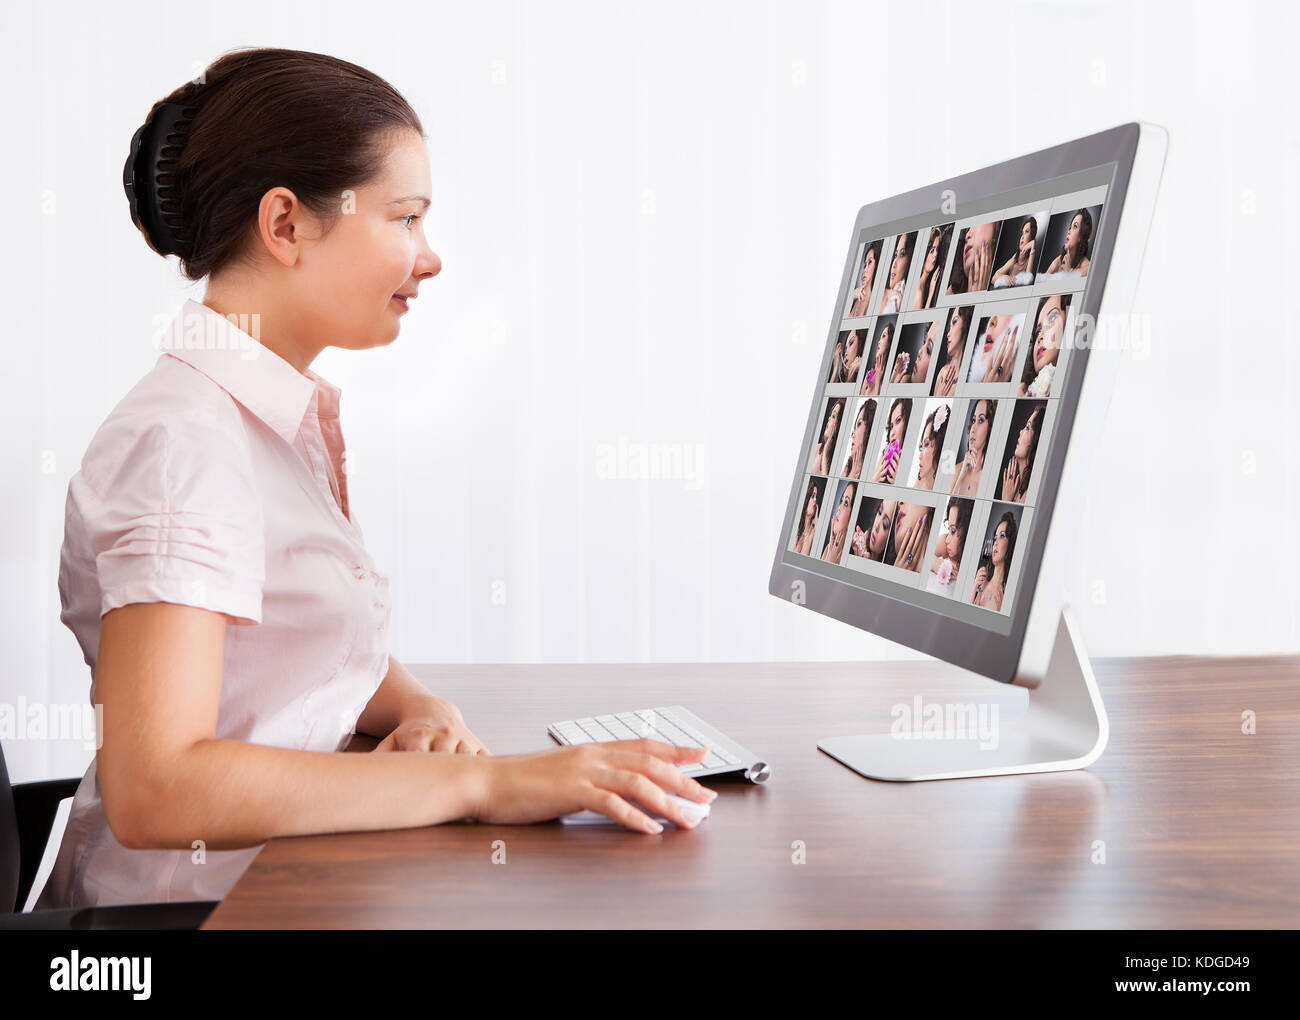 Happy Professional Designer Woman Editing Images In Office - Stock Image